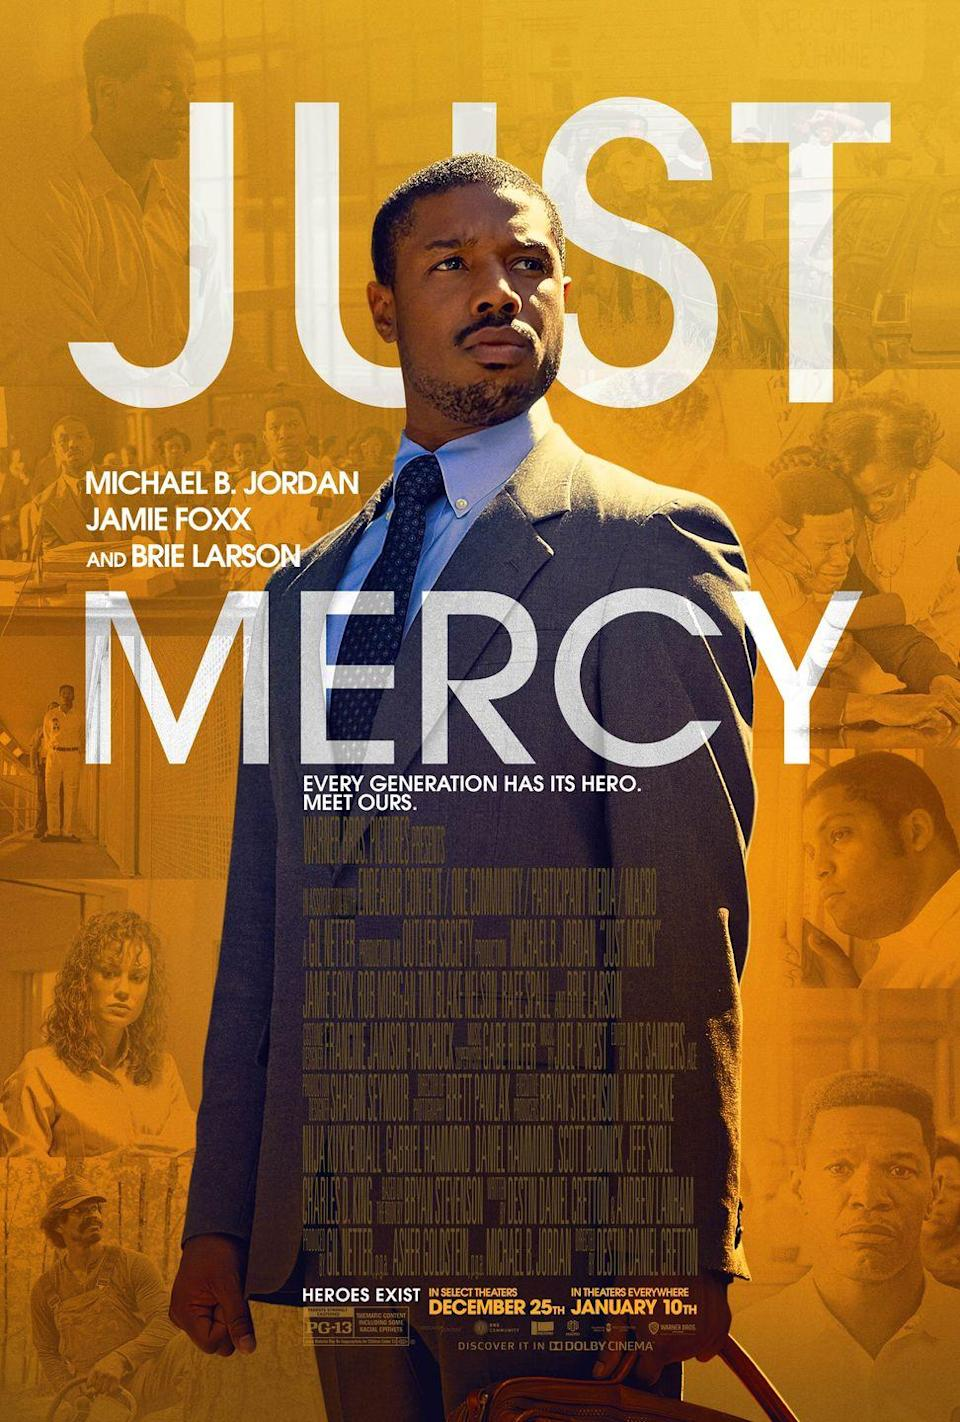 """<p><a class=""""link rapid-noclick-resp"""" href=""""https://www.amazon.com/Just-Mercy-Michael-B-Jordan/dp/B082YKN1M1/ref=sr_1_2?dchild=1&keywords=just+mercy&qid=1614184576&sr=8-2&tag=syn-yahoo-20&ascsubtag=%5Bartid%7C10063.g.35716832%5Bsrc%7Cyahoo-us"""" rel=""""nofollow noopener"""" target=""""_blank"""" data-ylk=""""slk:Watch Now"""">Watch Now</a></p><p>Based on the eponymous memoir by <a href=""""https://www.townandcountrymag.com/society/money-and-power/a32755602/agnes-gund-summer-2020-cover-interview-bryan-stevenson-social-justice-philanthropy/"""" rel=""""nofollow noopener"""" target=""""_blank"""" data-ylk=""""slk:Bryan Stevenson"""" class=""""link rapid-noclick-resp"""">Bryan Stevenson</a>, the lawyer, social justice activist, and <a href=""""https://www.townandcountrymag.com/society/politics/a5602/bryan-stevenson-equal-justice-initiative/"""" rel=""""nofollow noopener"""" target=""""_blank"""" data-ylk=""""slk:founder of the Equal Justice Initiative"""" class=""""link rapid-noclick-resp"""">founder of the Equal Justice Initiative</a>, <em>Just Mercy</em> is about a young Stevenson who goes to Alabama to help those who can't afford proper legal representation. He meets Walter McMillian, an African-American man on death row for the murder of a white woman, which he did not commit. The film, with its A-list cast (Michael B. Jordan as Stevenson, Jamie Foxx as McMillian), depicts Stevenson's struggle with deep South racism and a problematic criminal justice system as he fights to exonerate McMillian. </p>"""